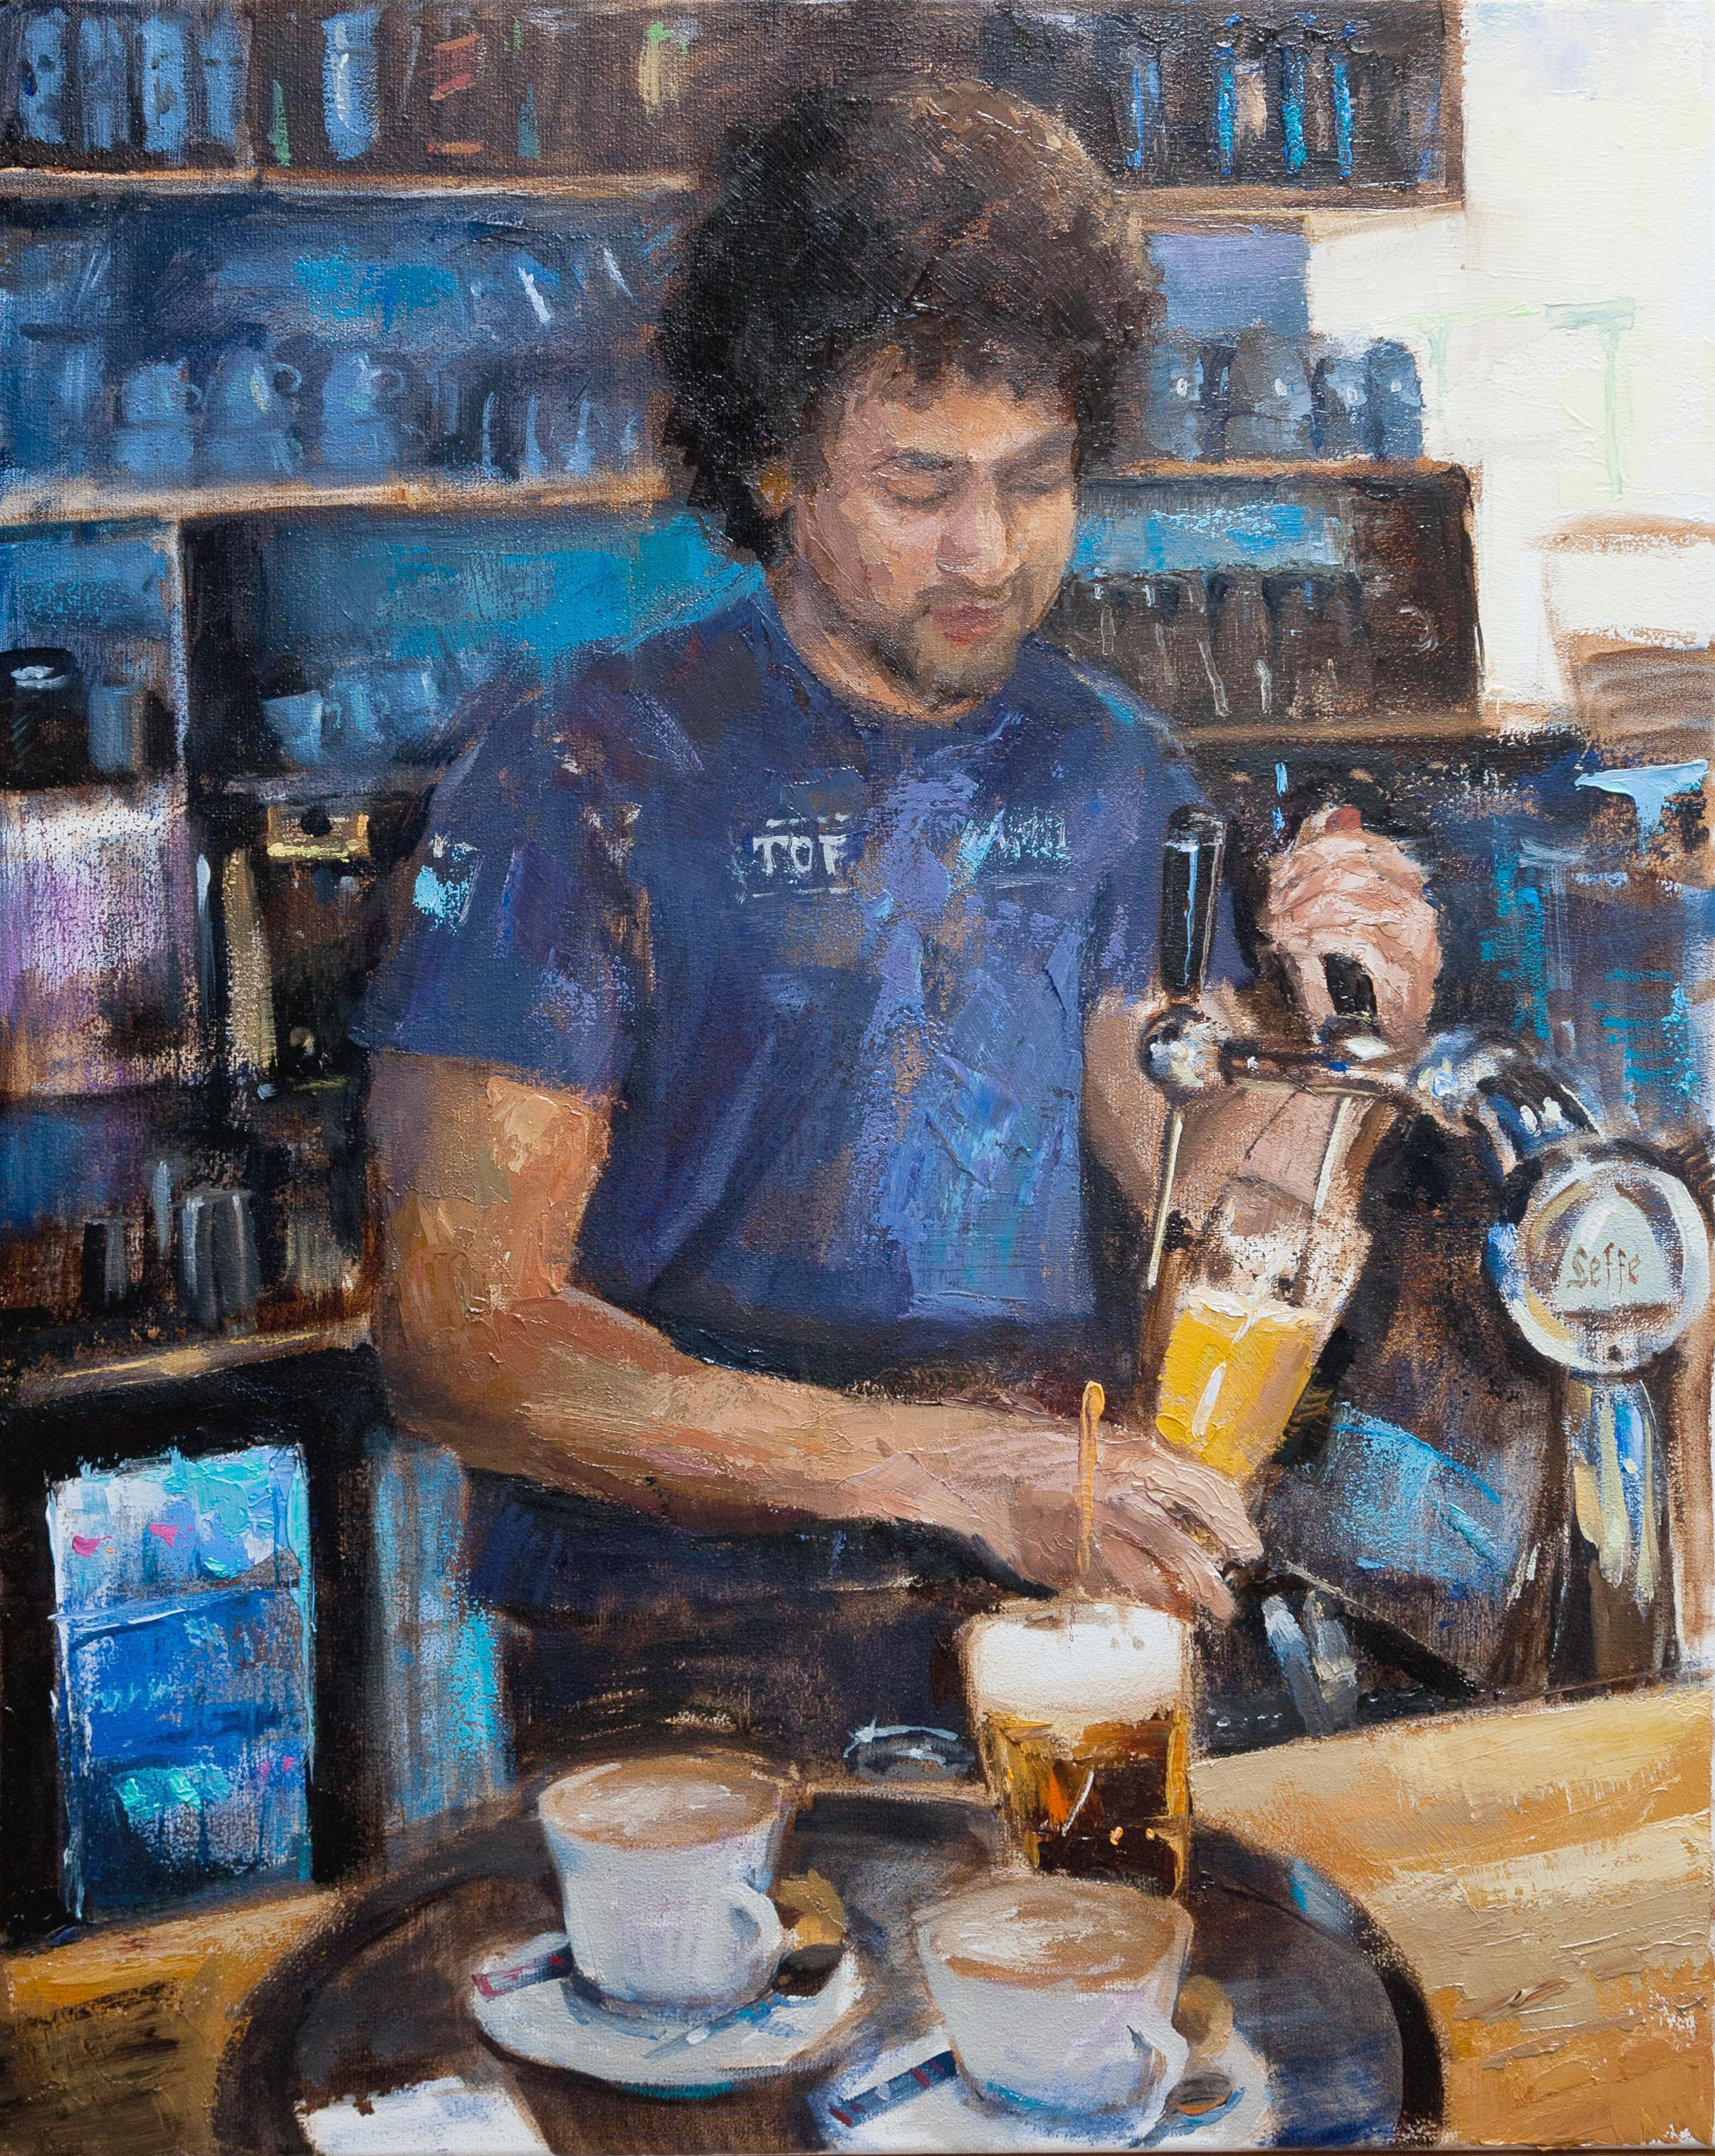 Cheers - 21st Century Contemporary Oil Painting of a Bartender Pouring a Beer